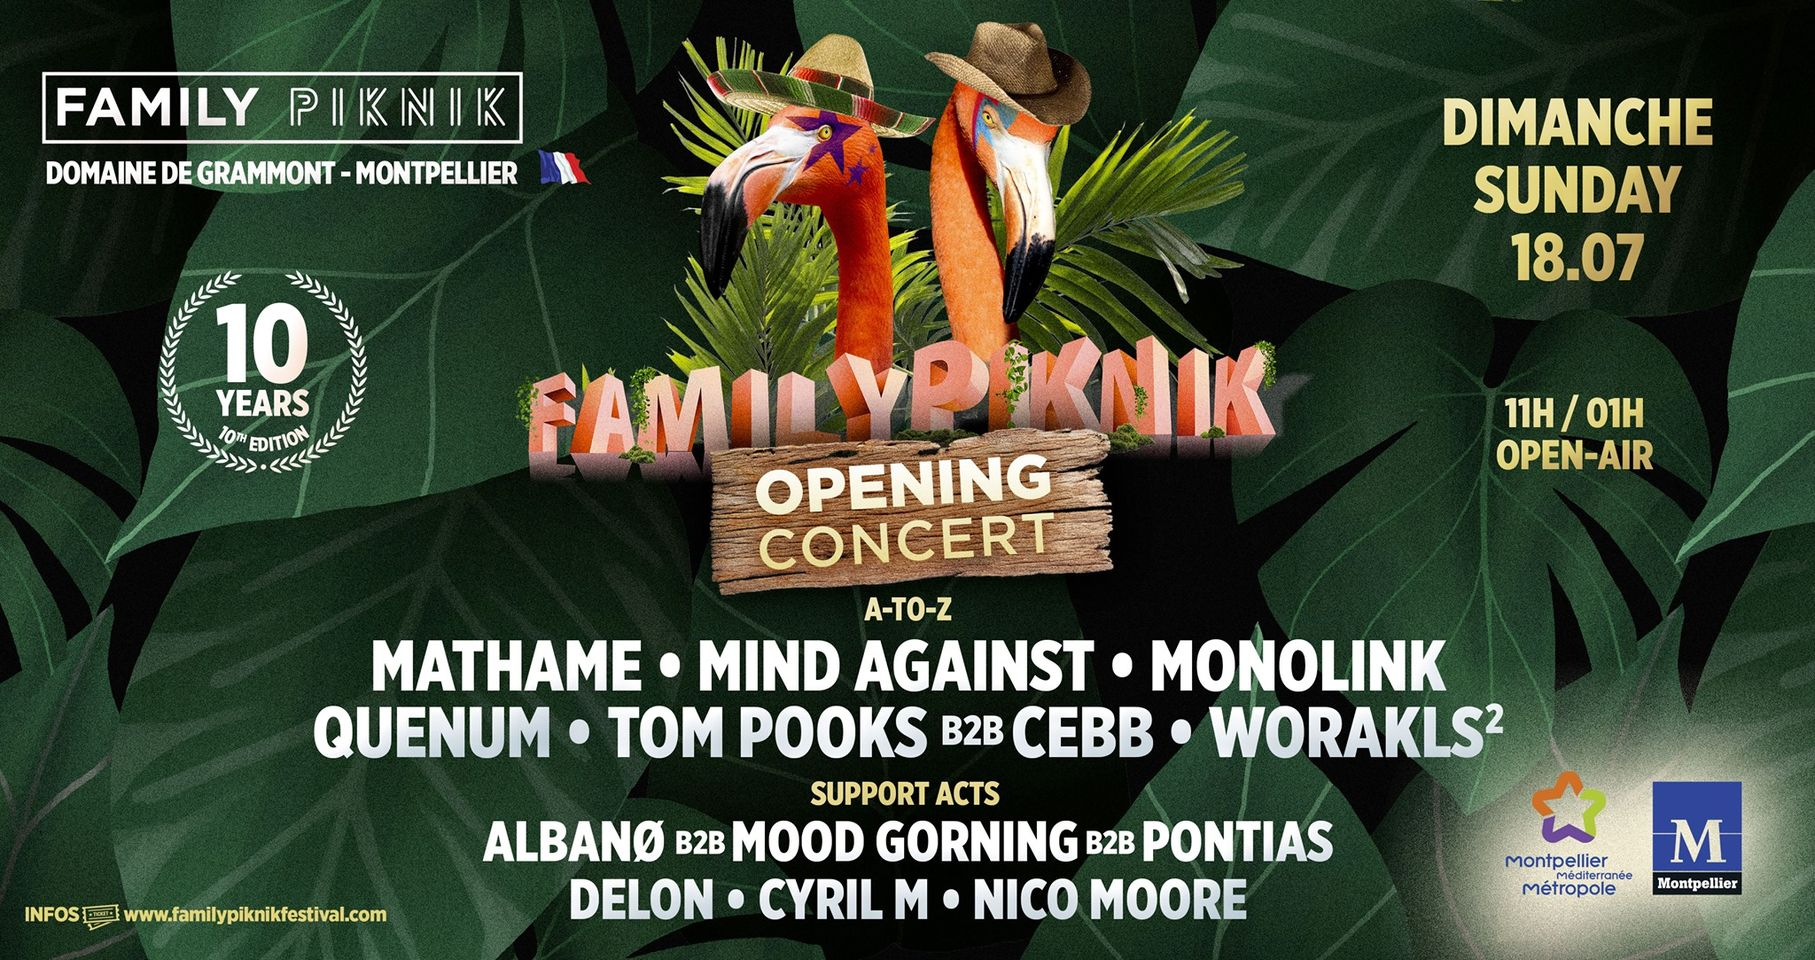 Family Piknik Opening concert